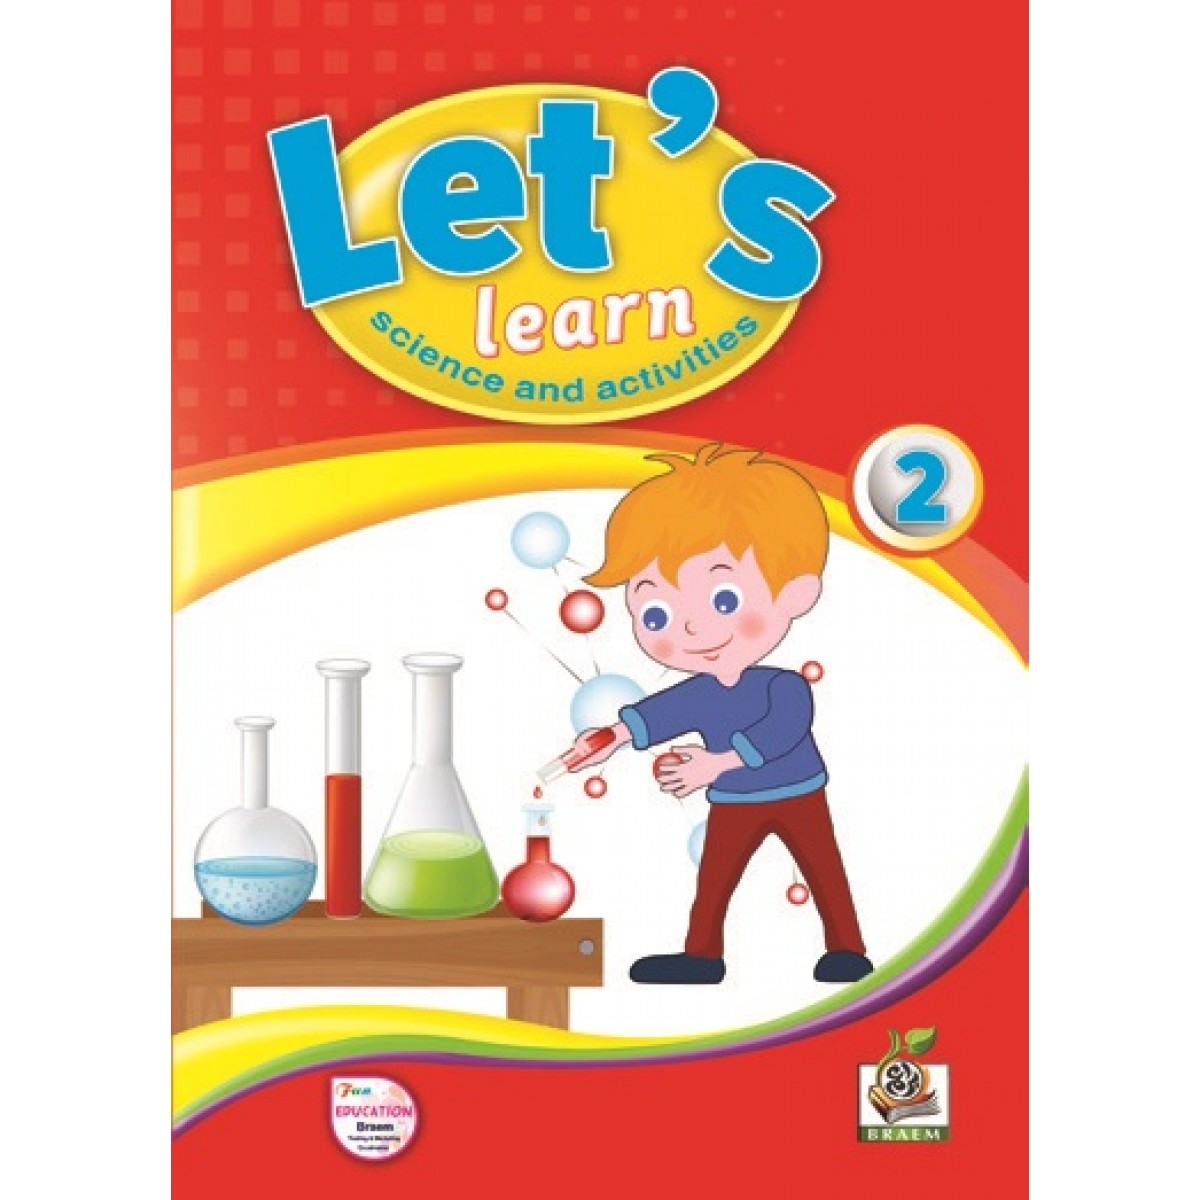 Let's Learn Science and Activities 2